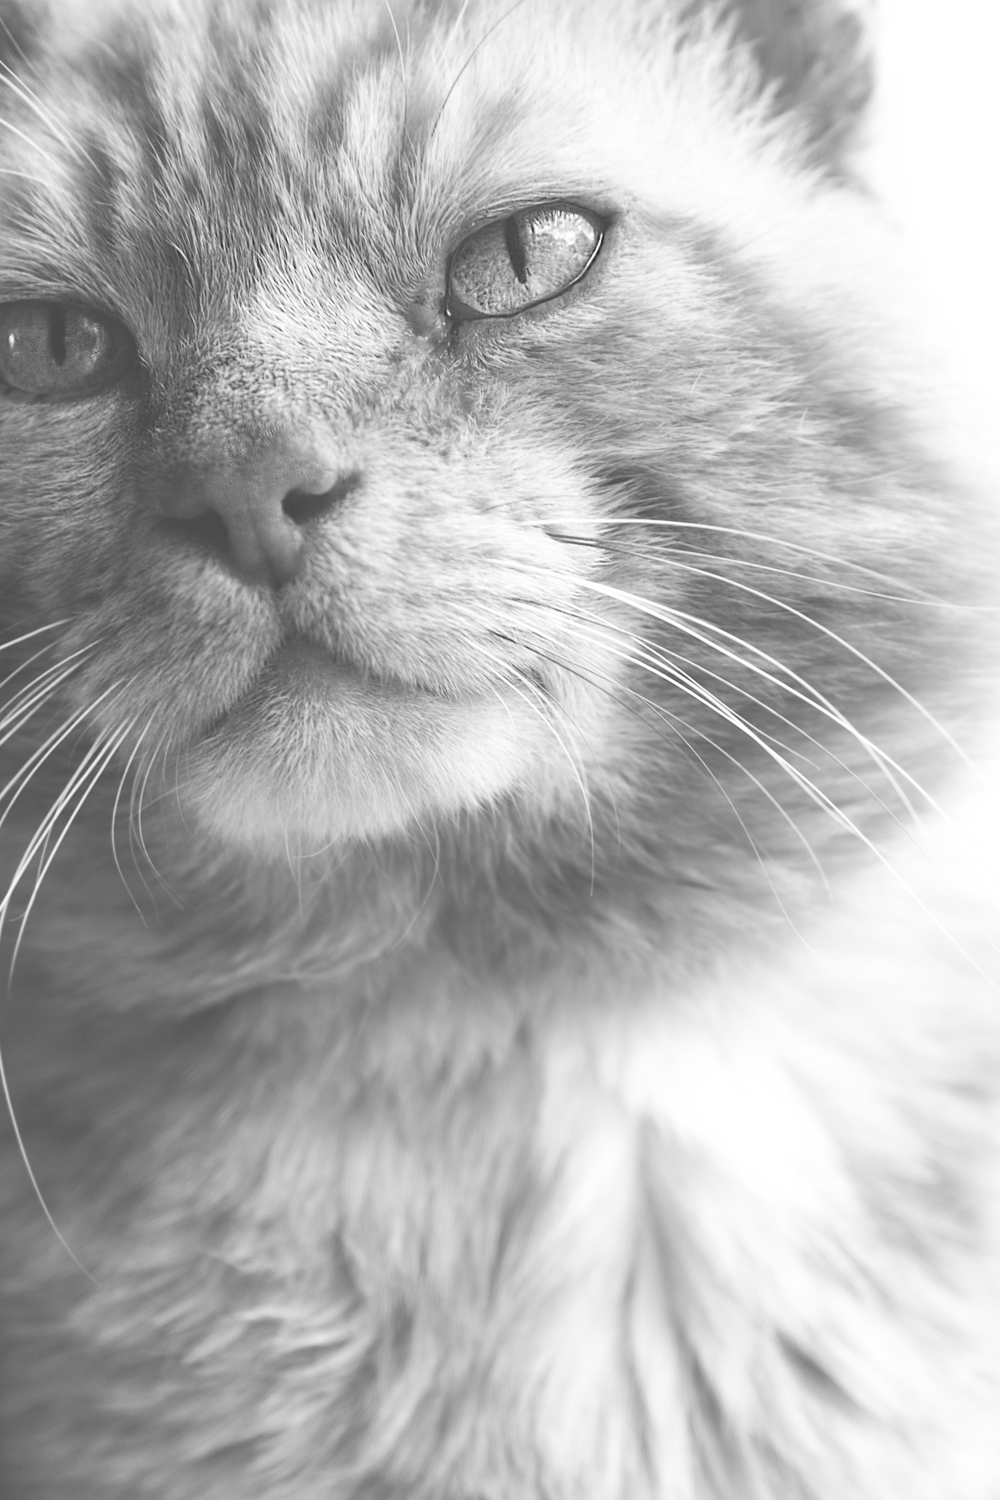 Fine art black and white close-up photograph of a cat's face